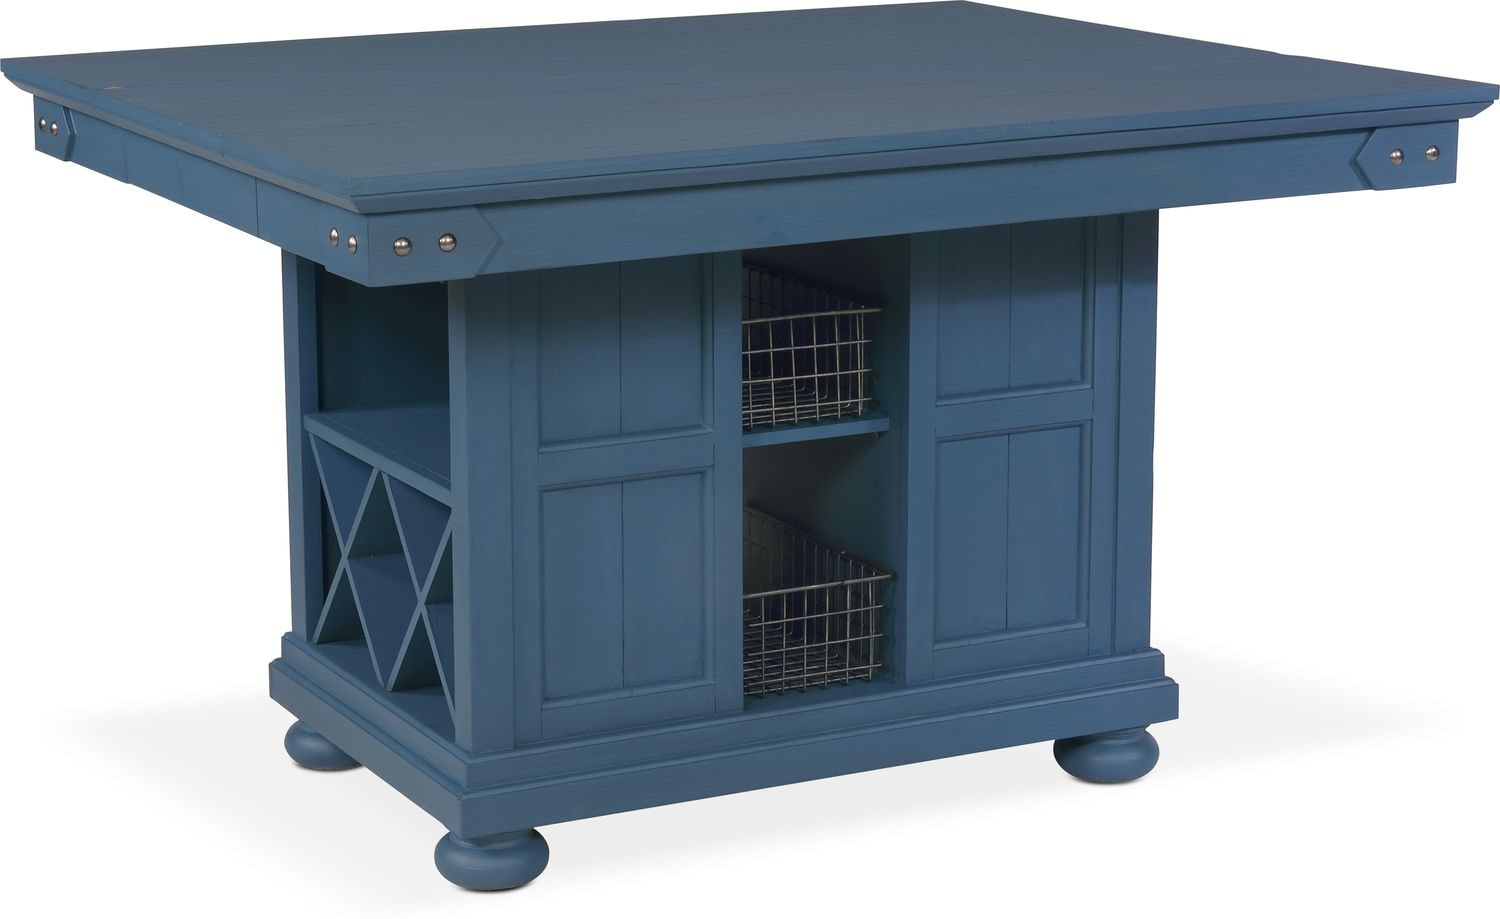 New Haven Kitchen Island - Blue | Value City Furniture and Mattresses